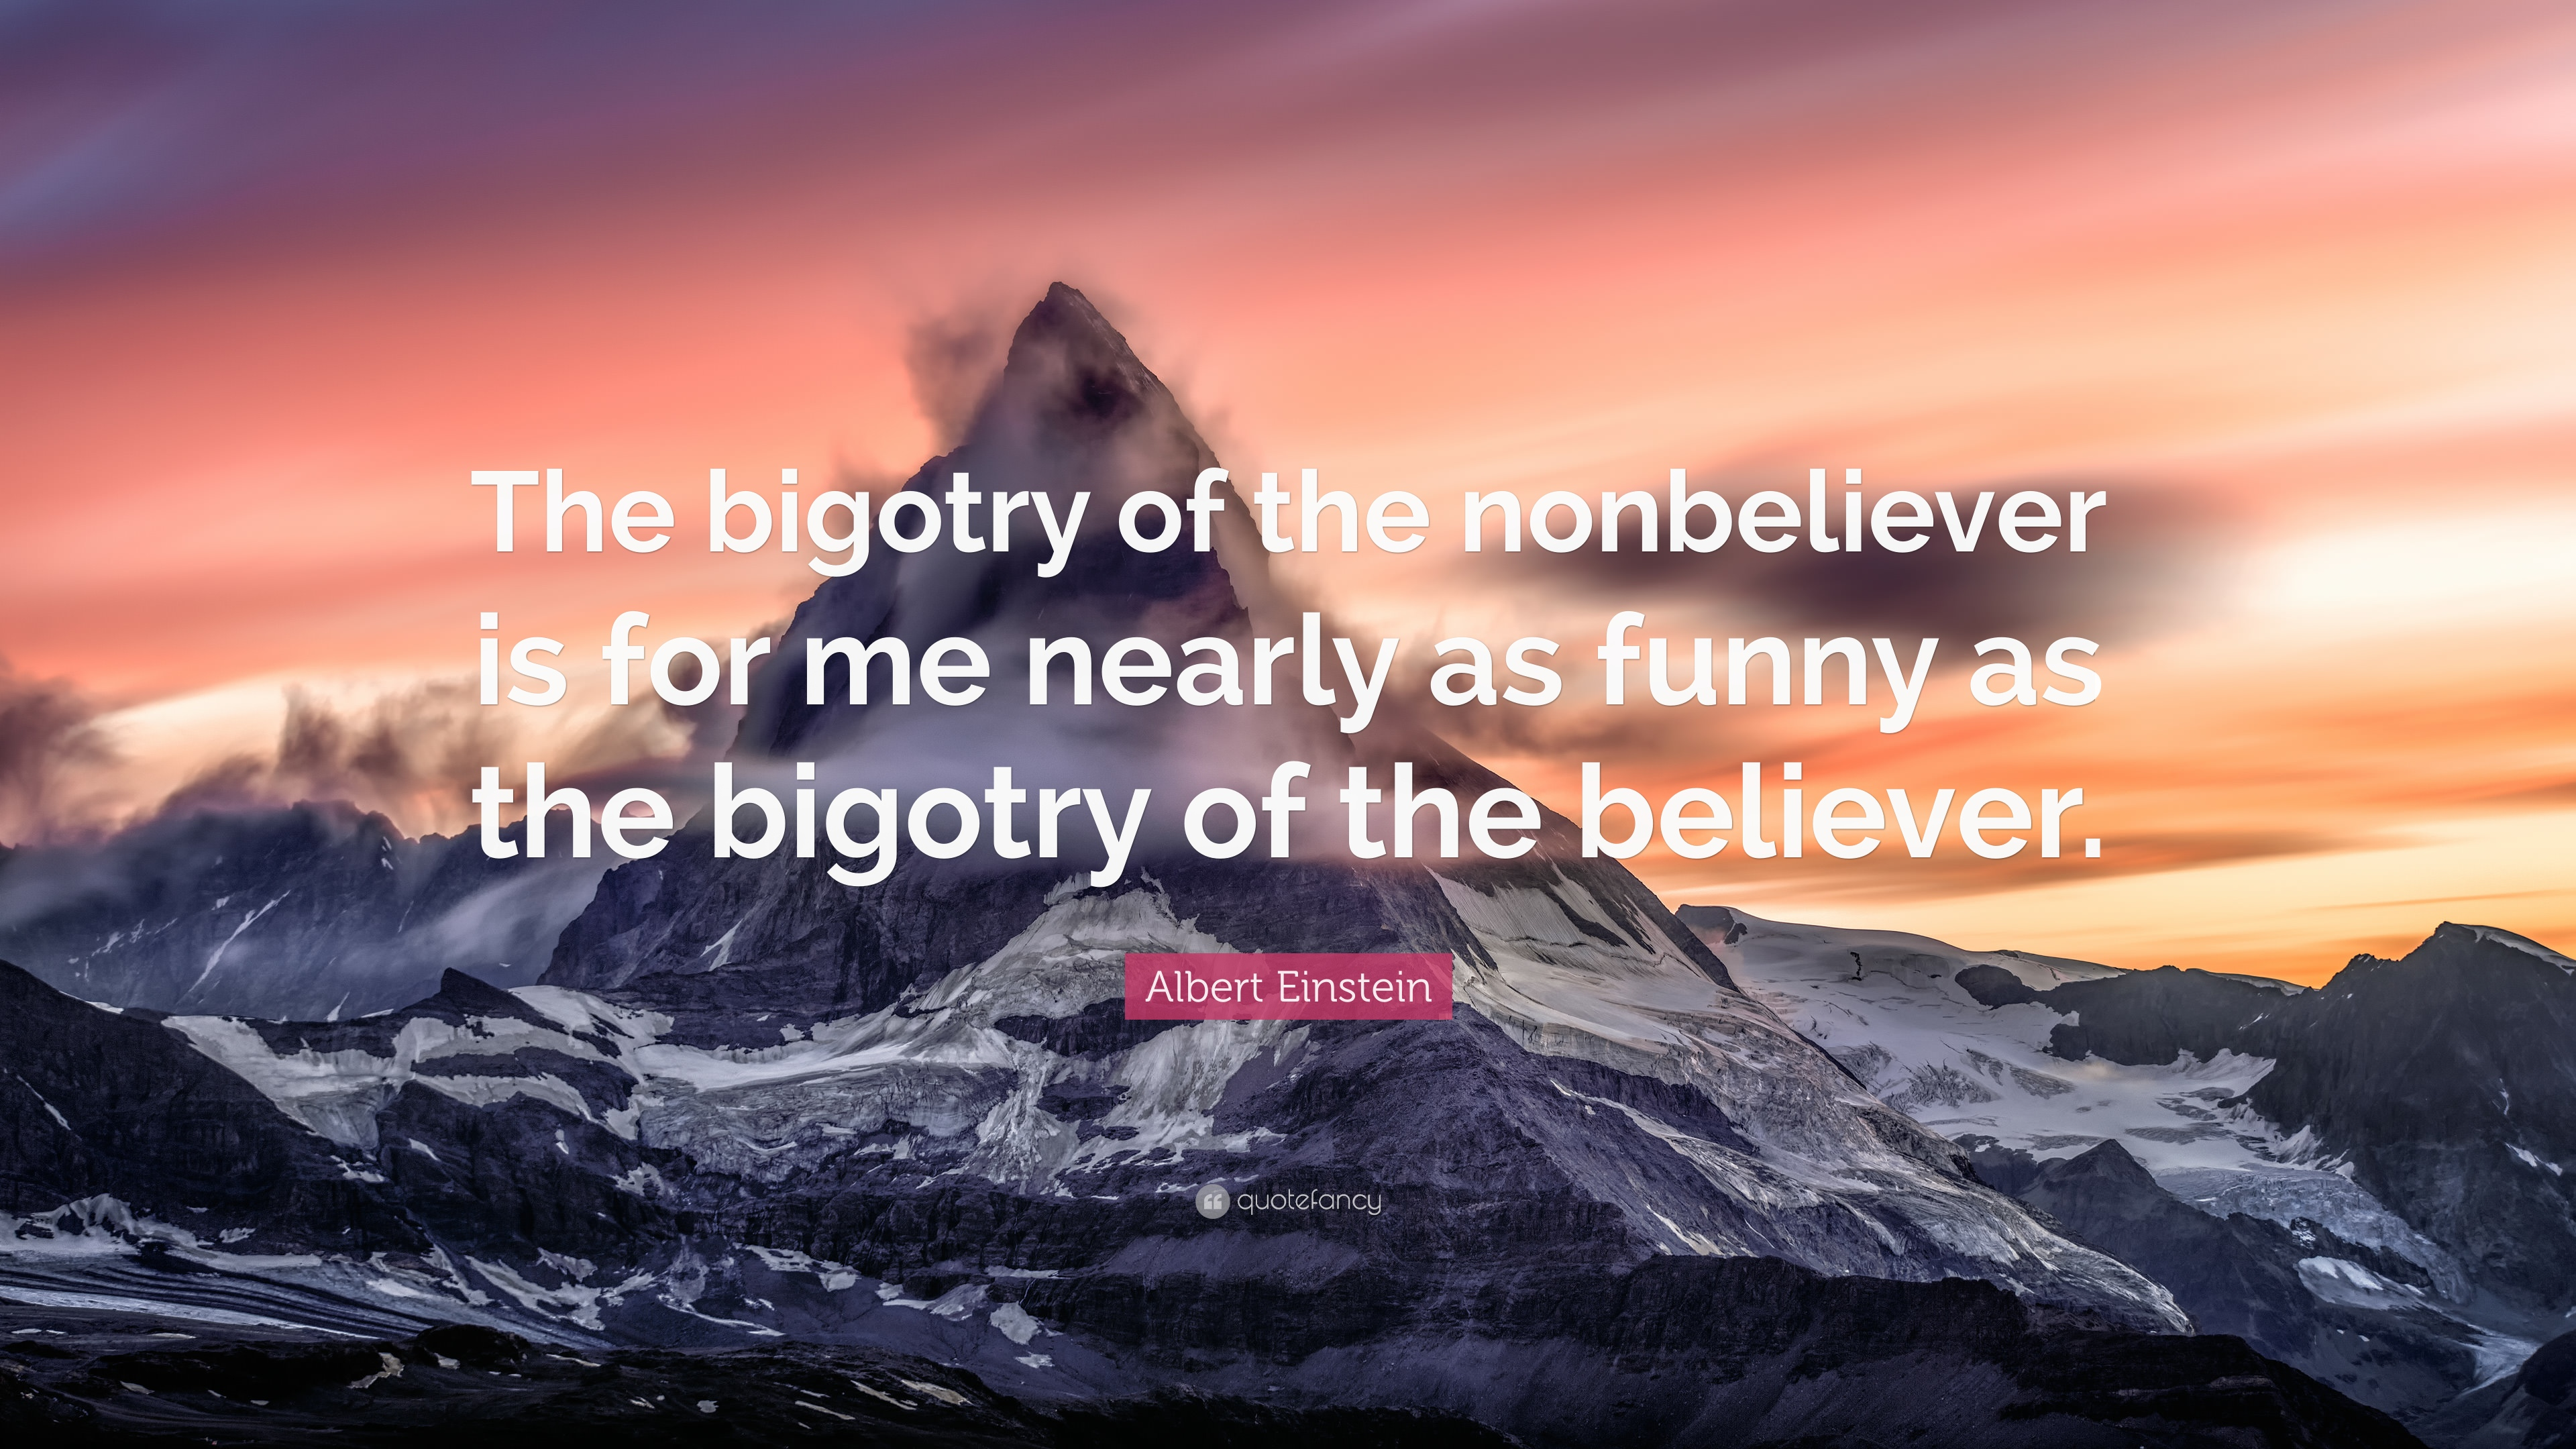 Albert Einstein Quote The Bigotry Of The Nonbeliever Is For Me Nearly As Funny As The Bigotry Of The Believer 12 Wallpapers Quotefancy